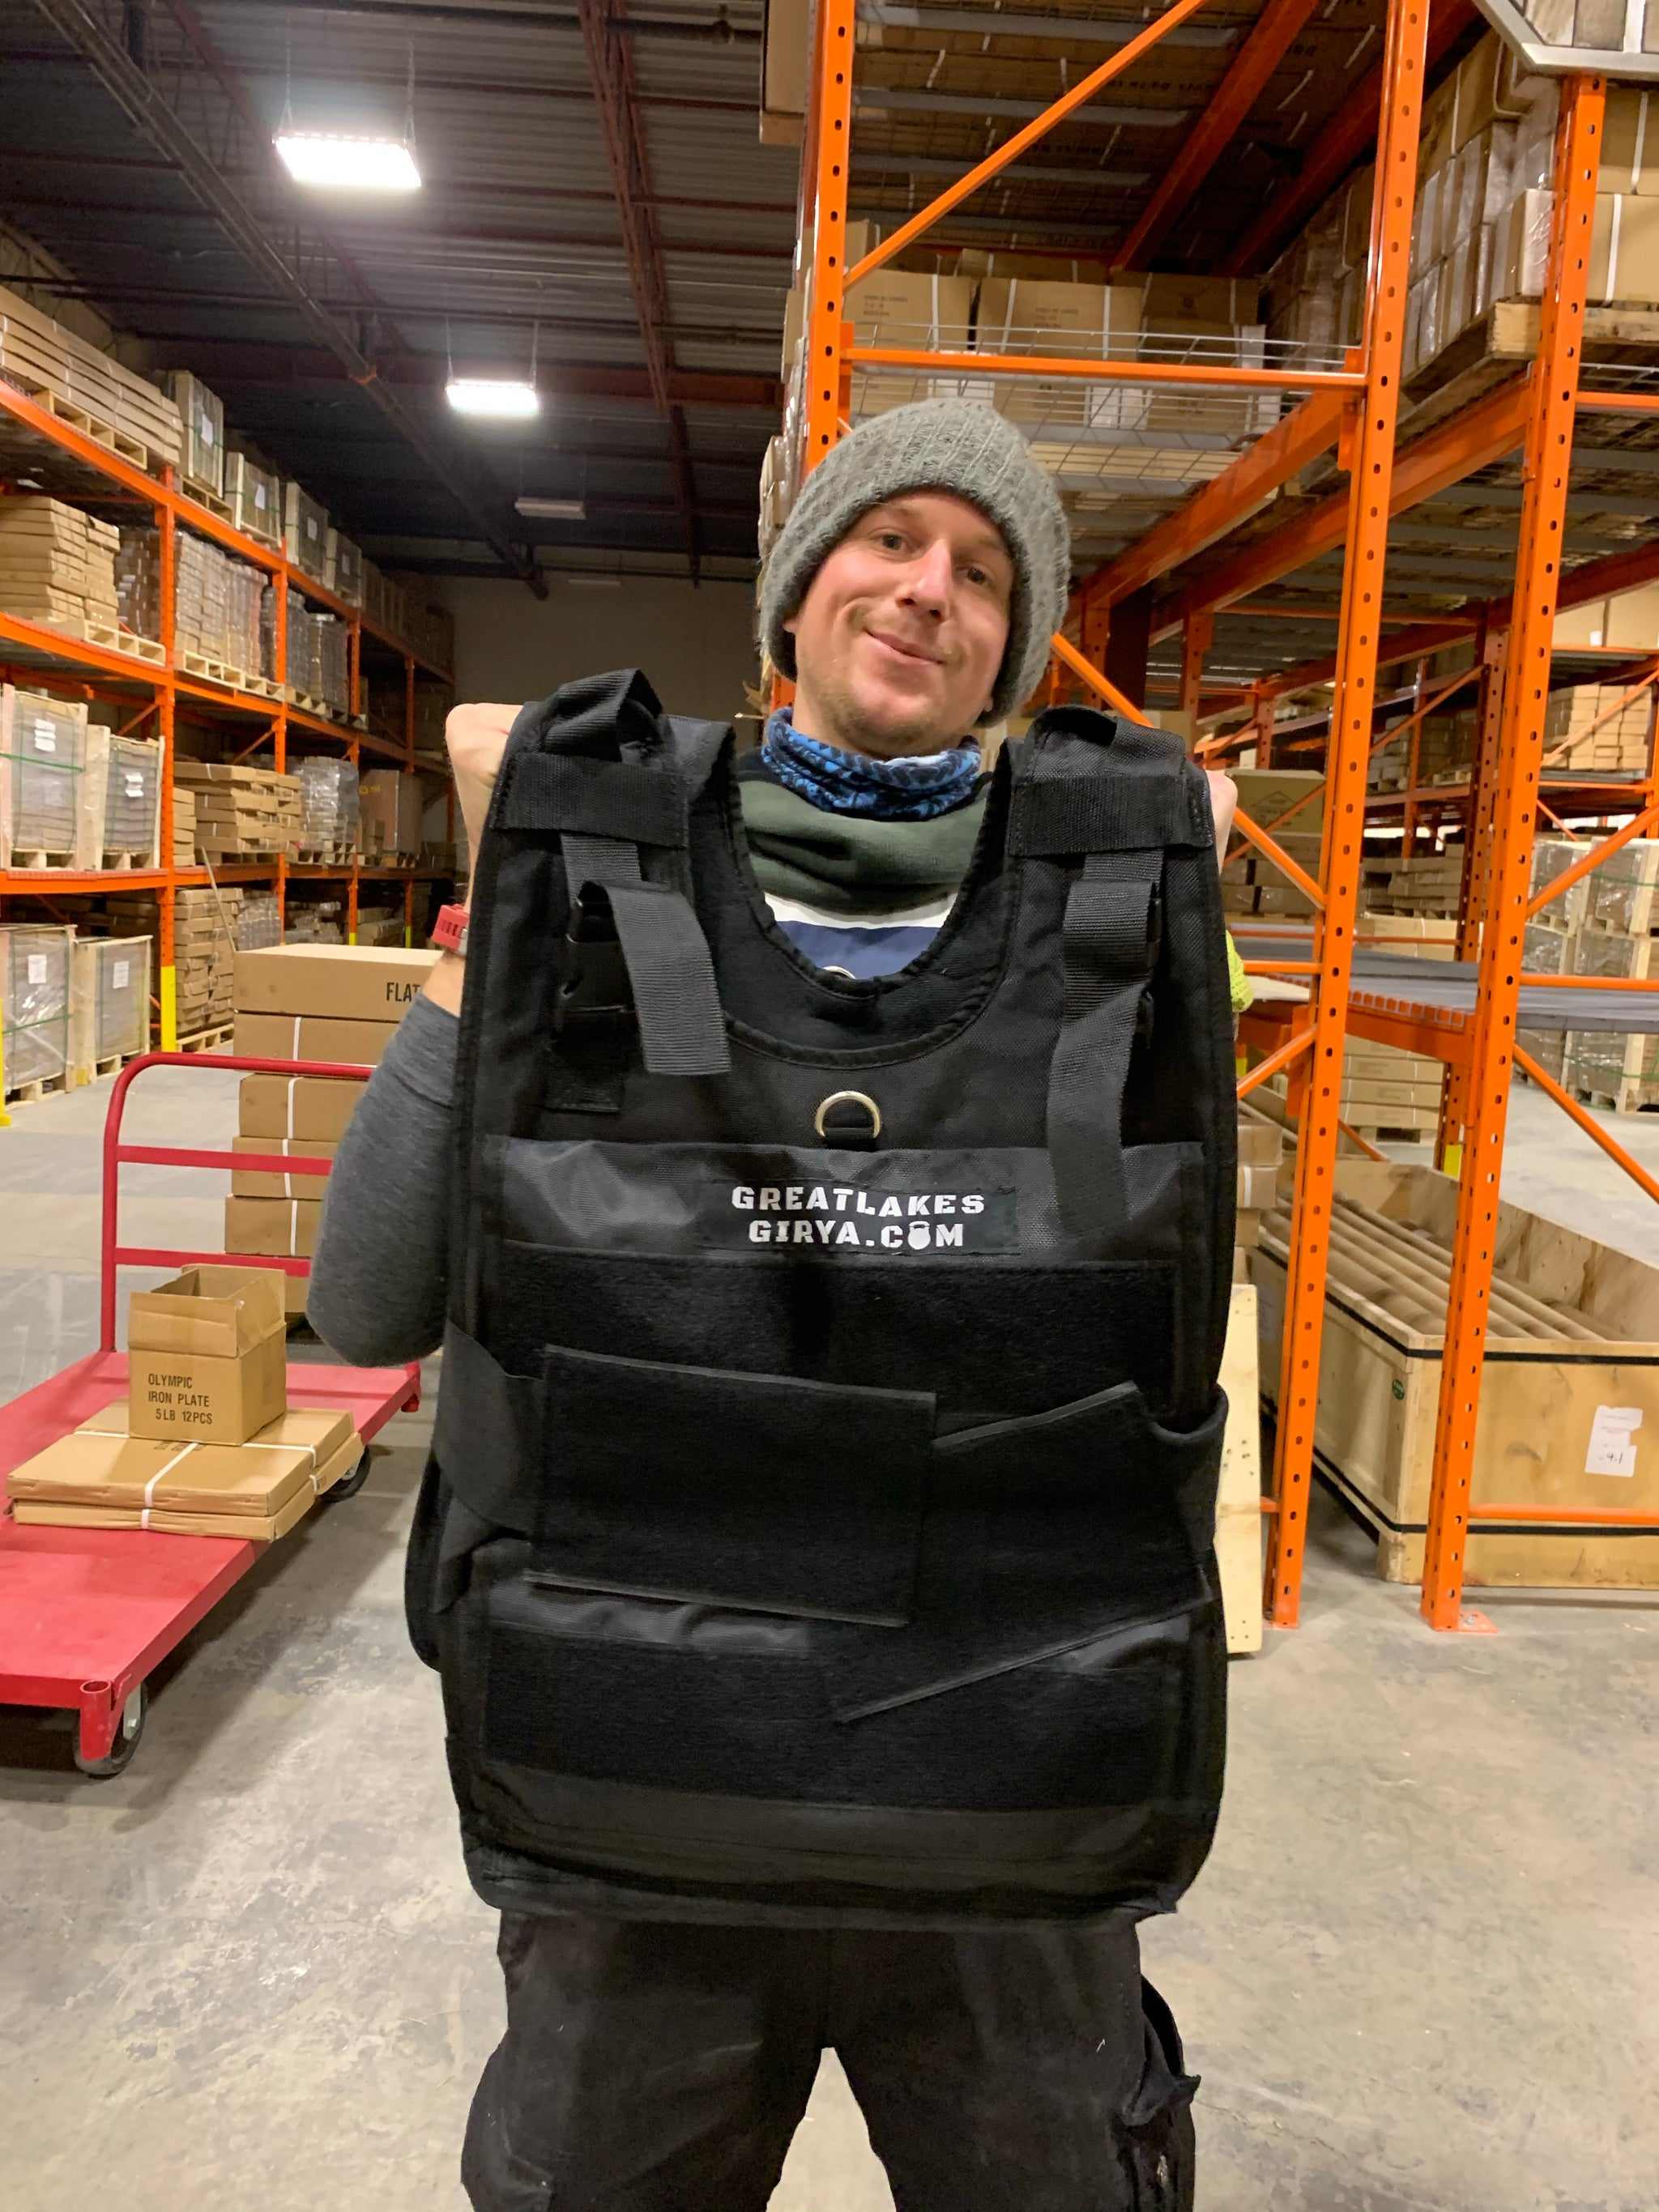 Weighted vest - Great Lakes Strength Manufacturing